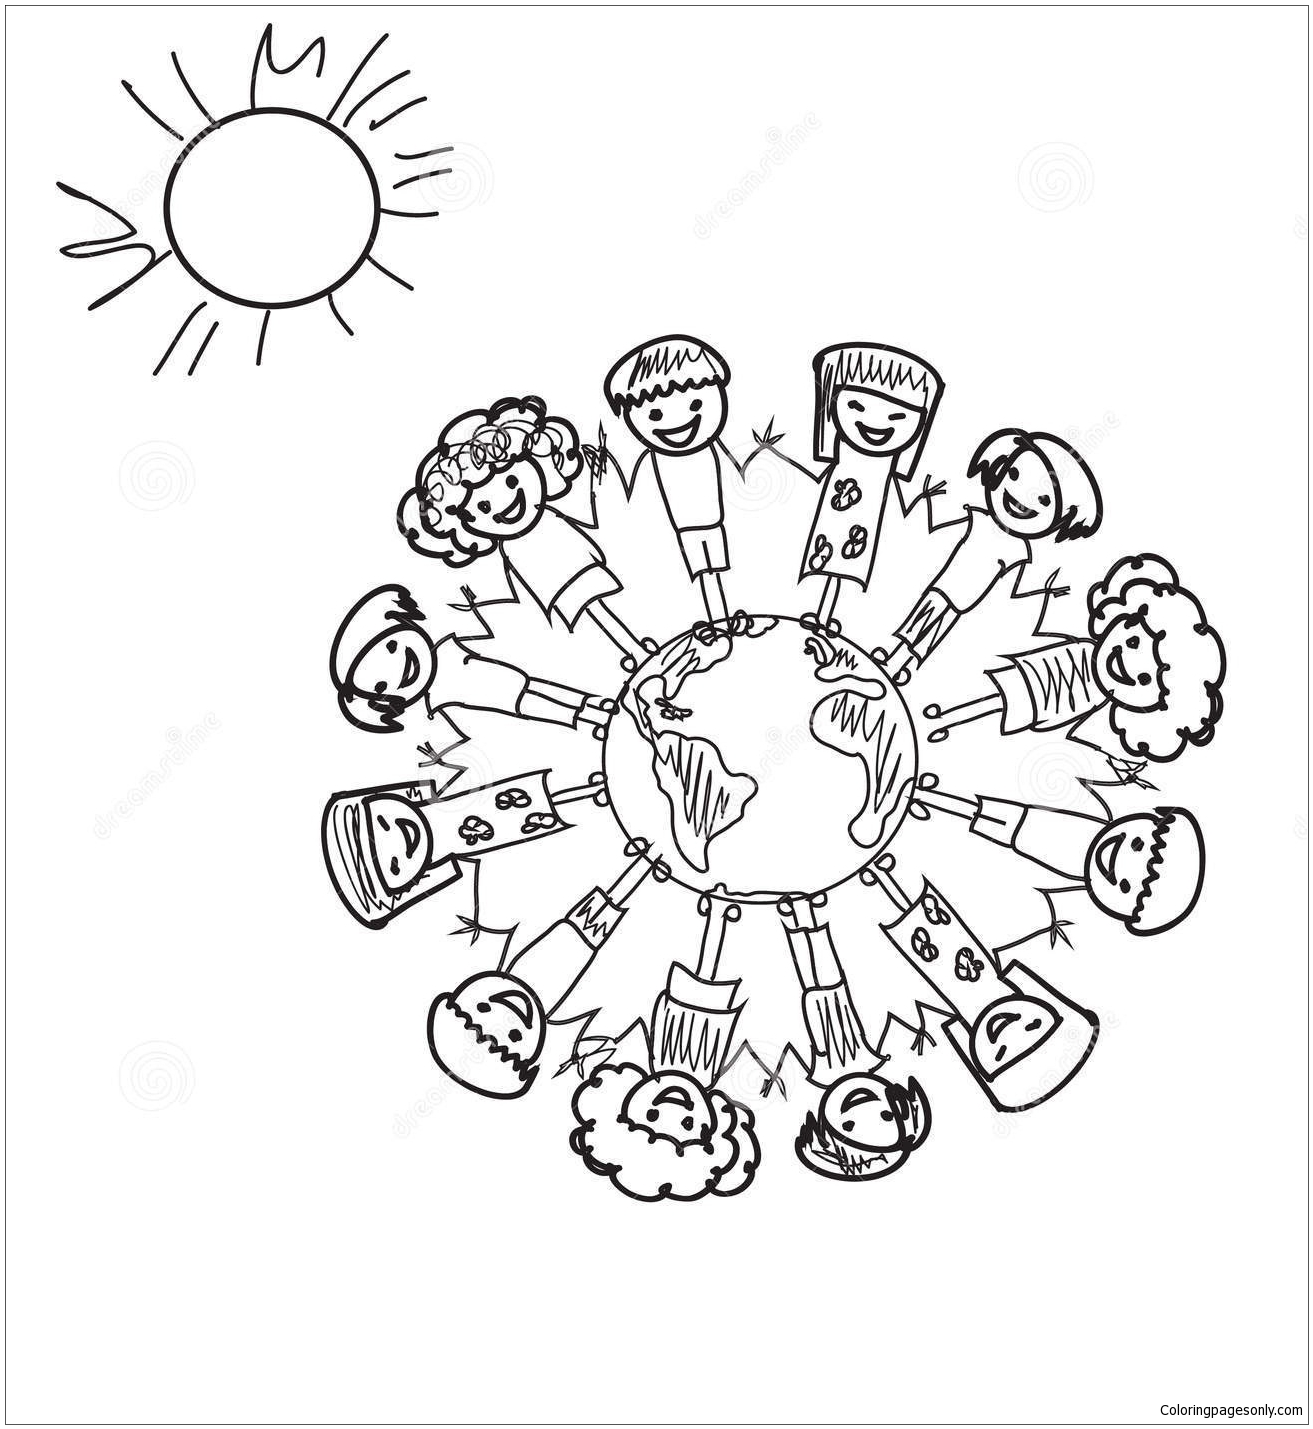 Earth Kids Doodle Coloring Page - Free Coloring Pages Online